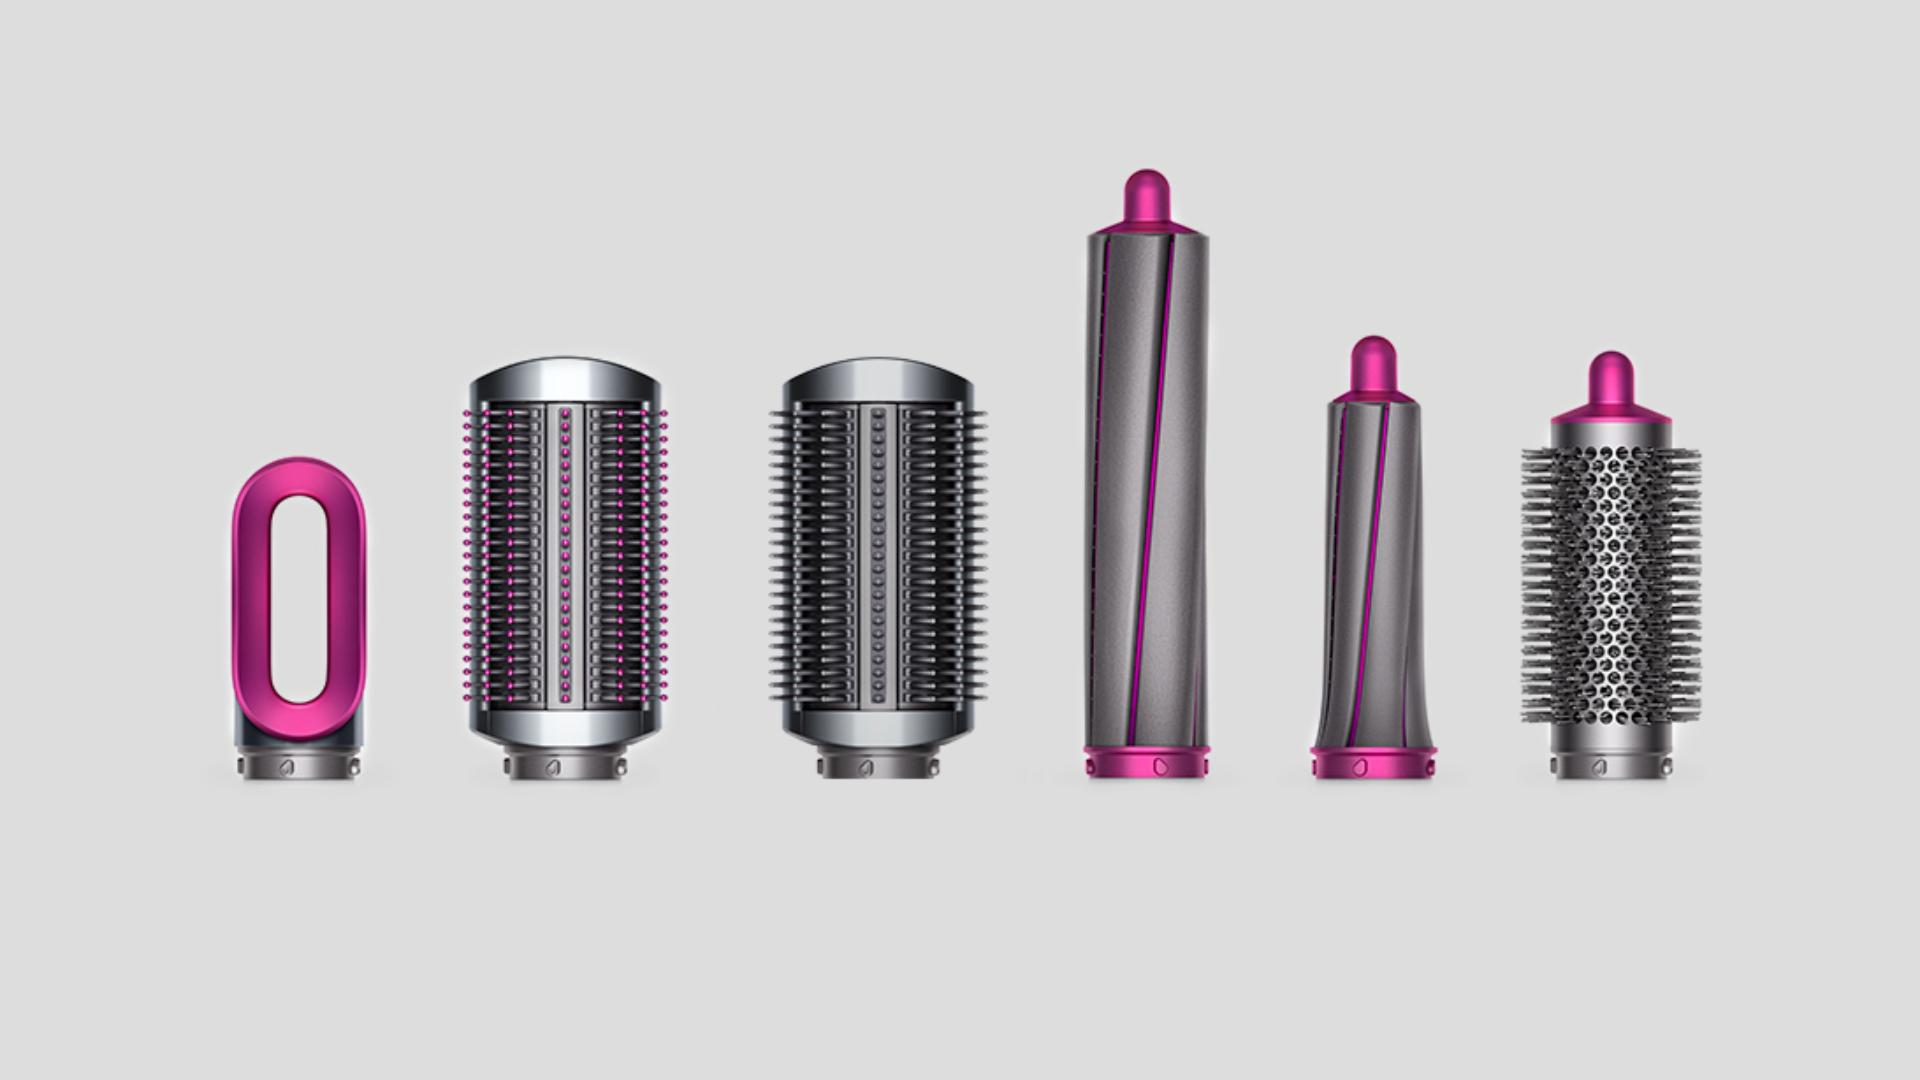 Line up of Dyson Airwrap styler attachments